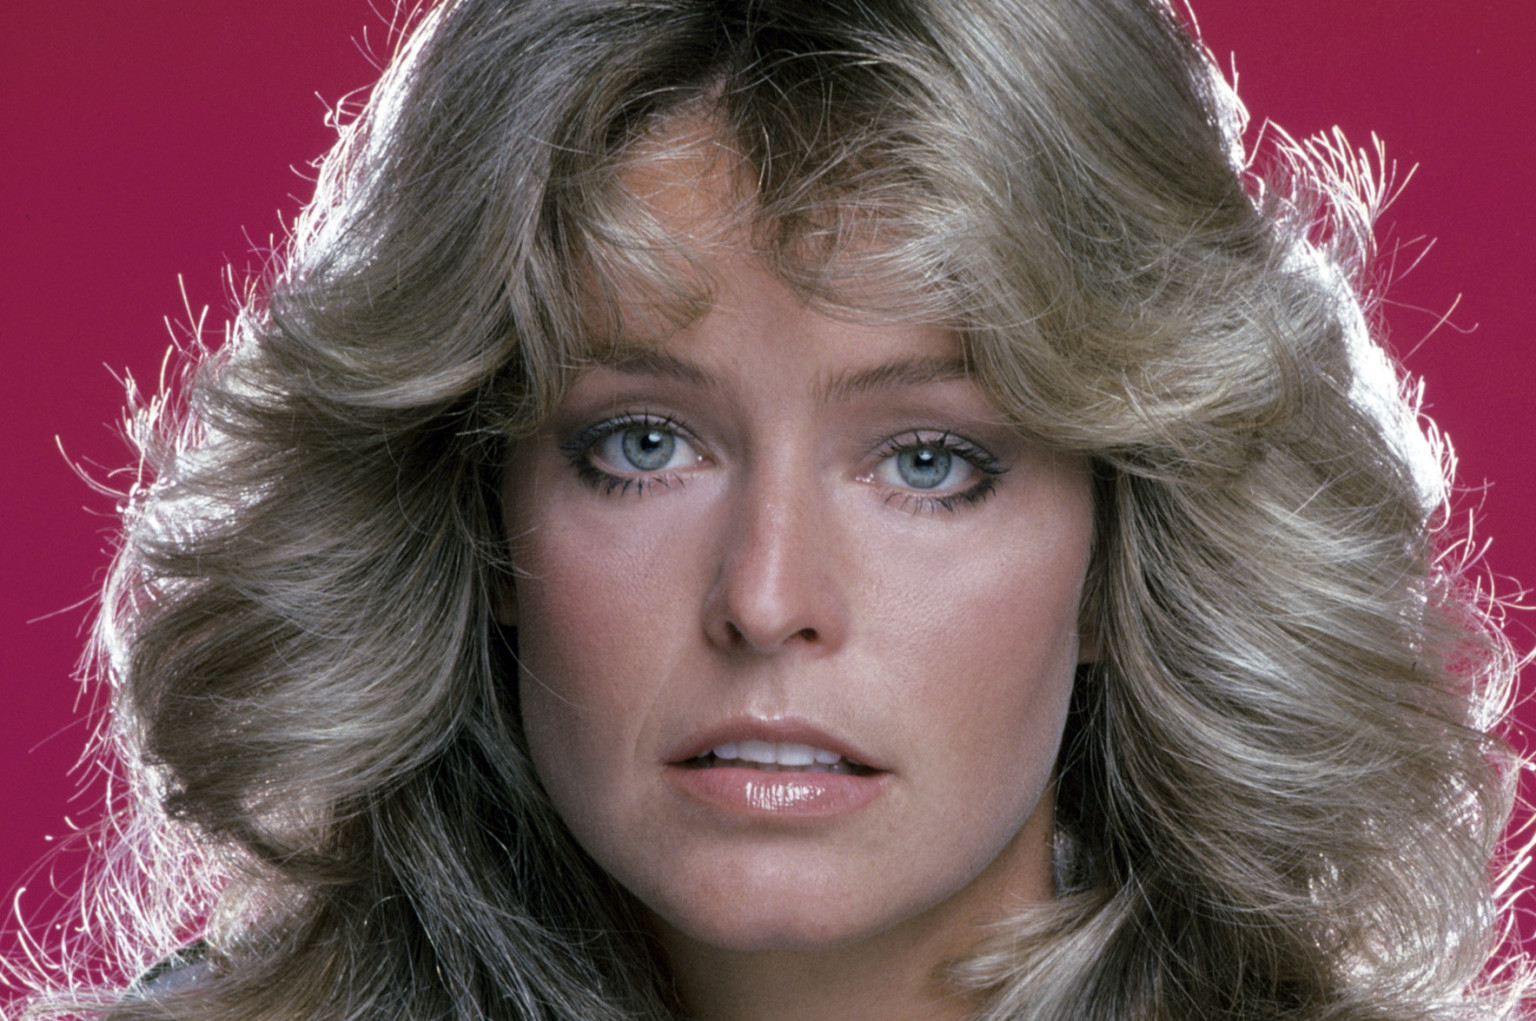 1970s Hair Styles: Farrah Fawcett's Famous Flip Hairstyle Over The Years